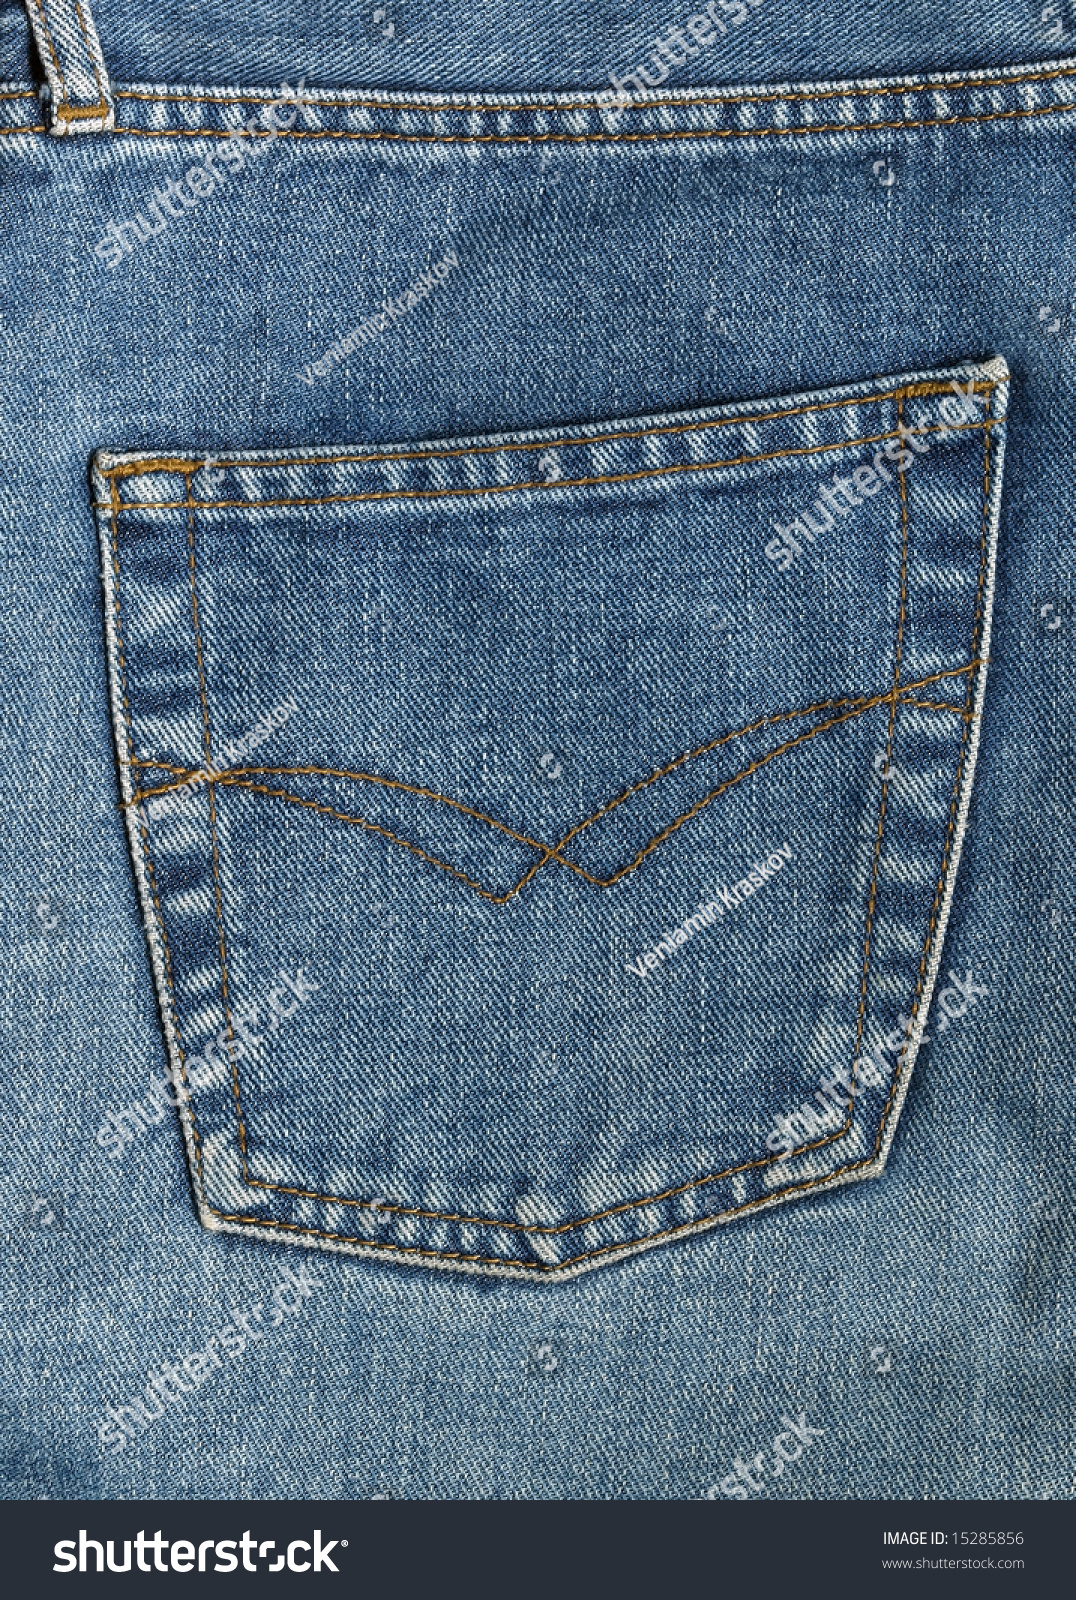 Back Pocket Denim Jeans Stock Photo 15285856 - Shutterstock